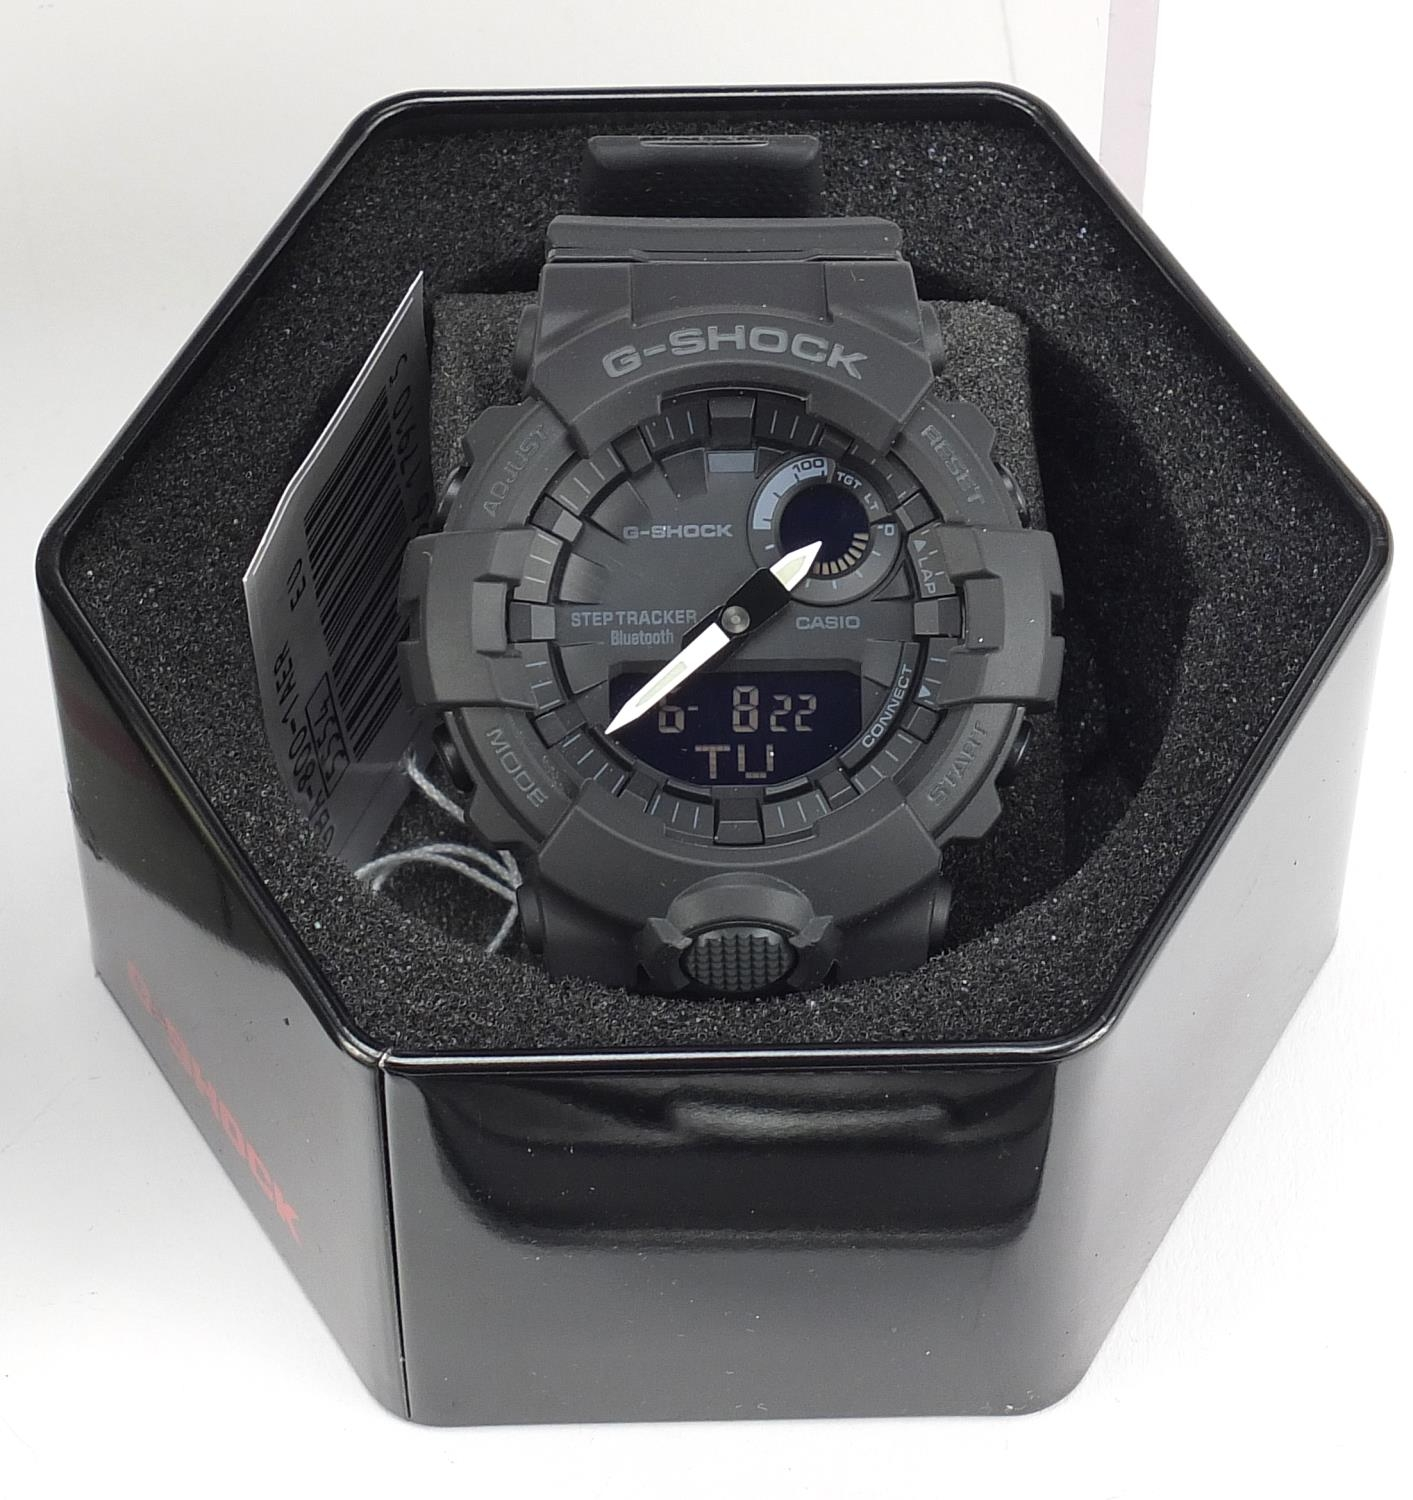 Four gentlemen's Casio G-Shock wristwatches with boxes, numbered GA-100, GA-100CF, GBA-800 and GW- - Image 3 of 5